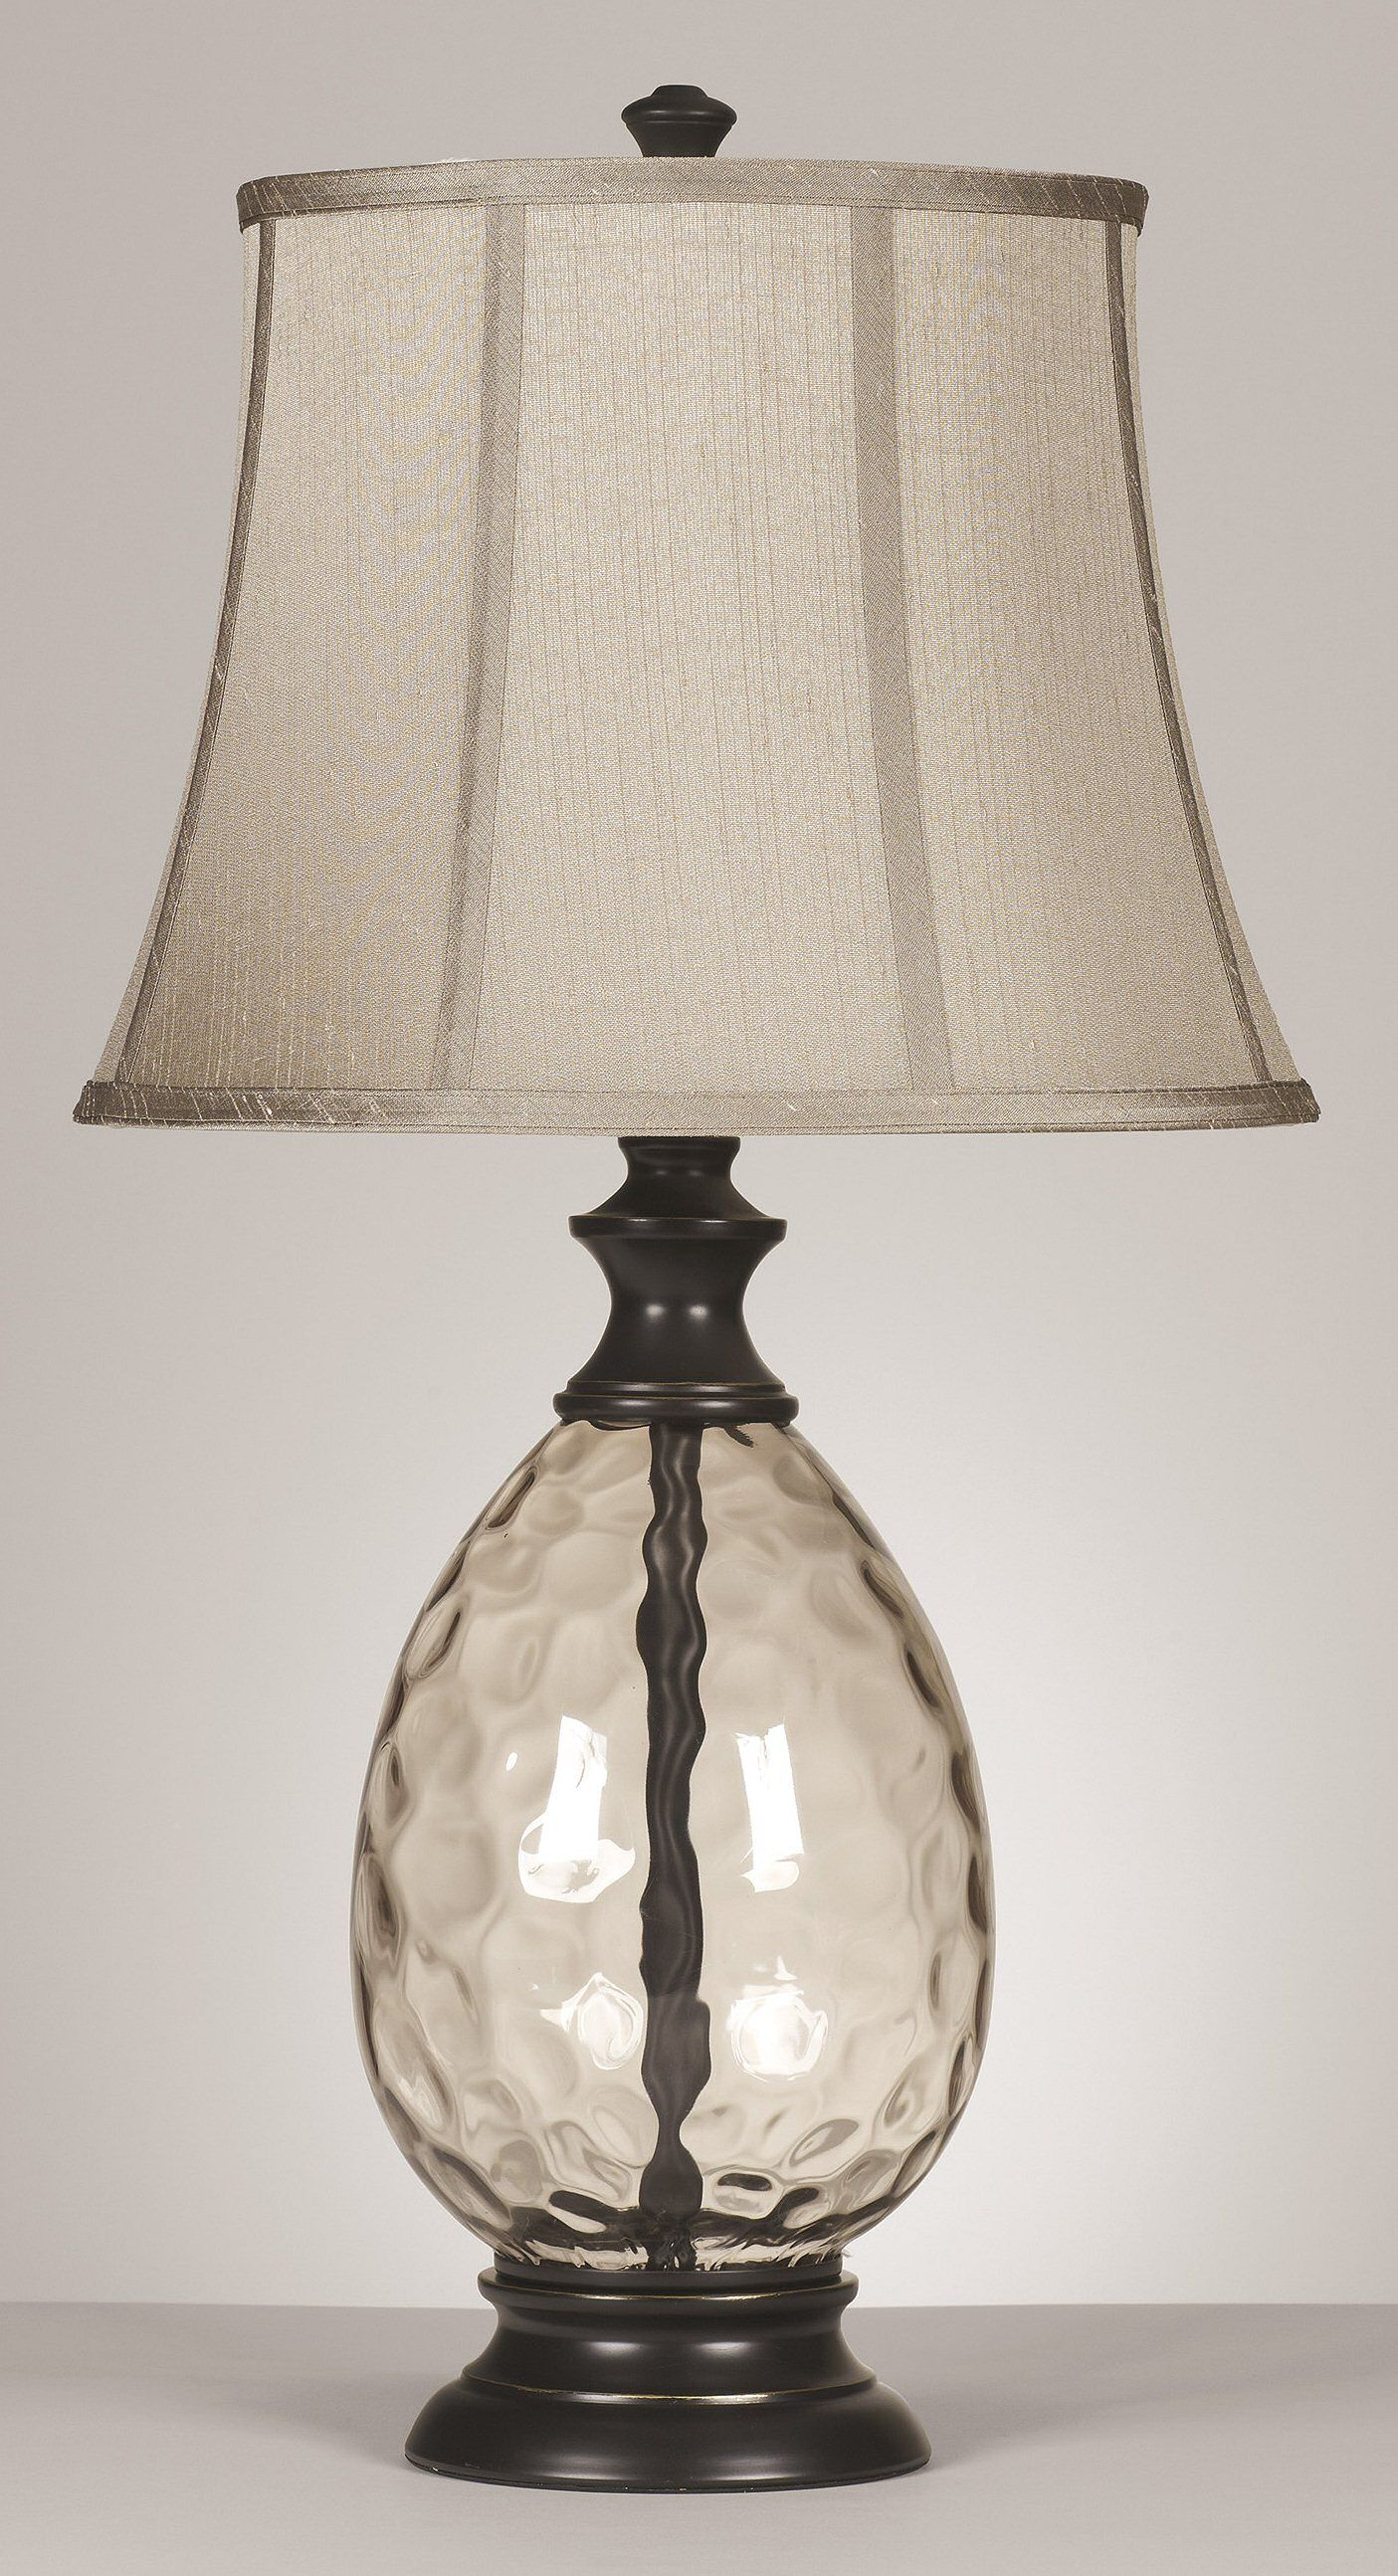 29 H Olivia 3 Way Glass Table Lamps Set Of 2 Bronze Table Lamp Lamp Lamp Sets